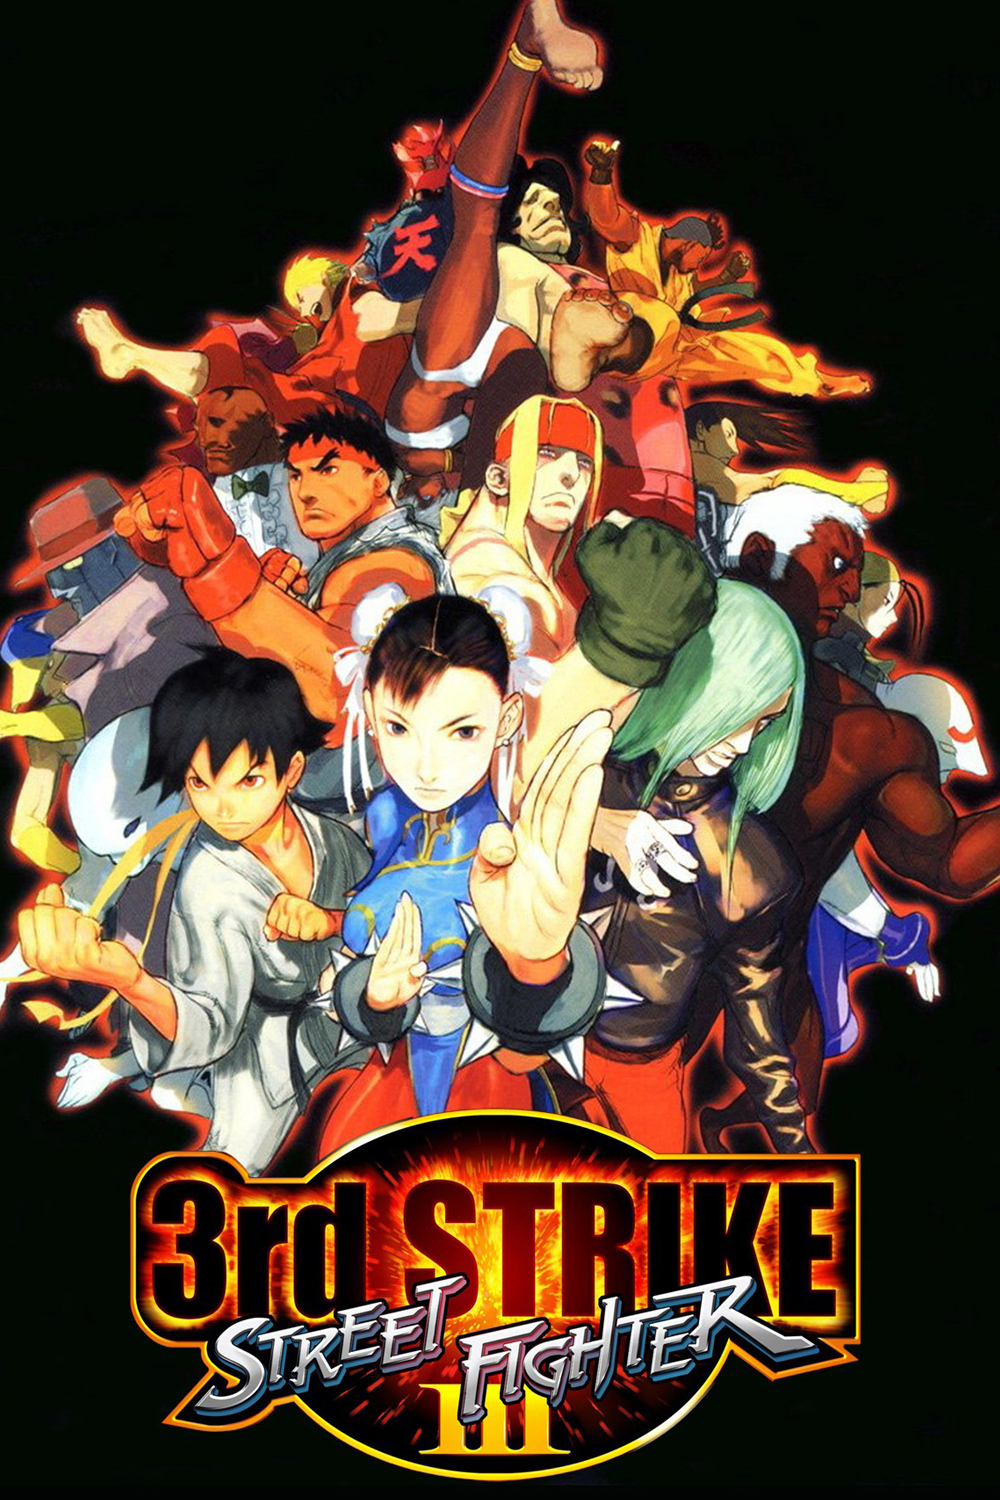 Street Fighter Iii 3rd Strike Fight For The Future